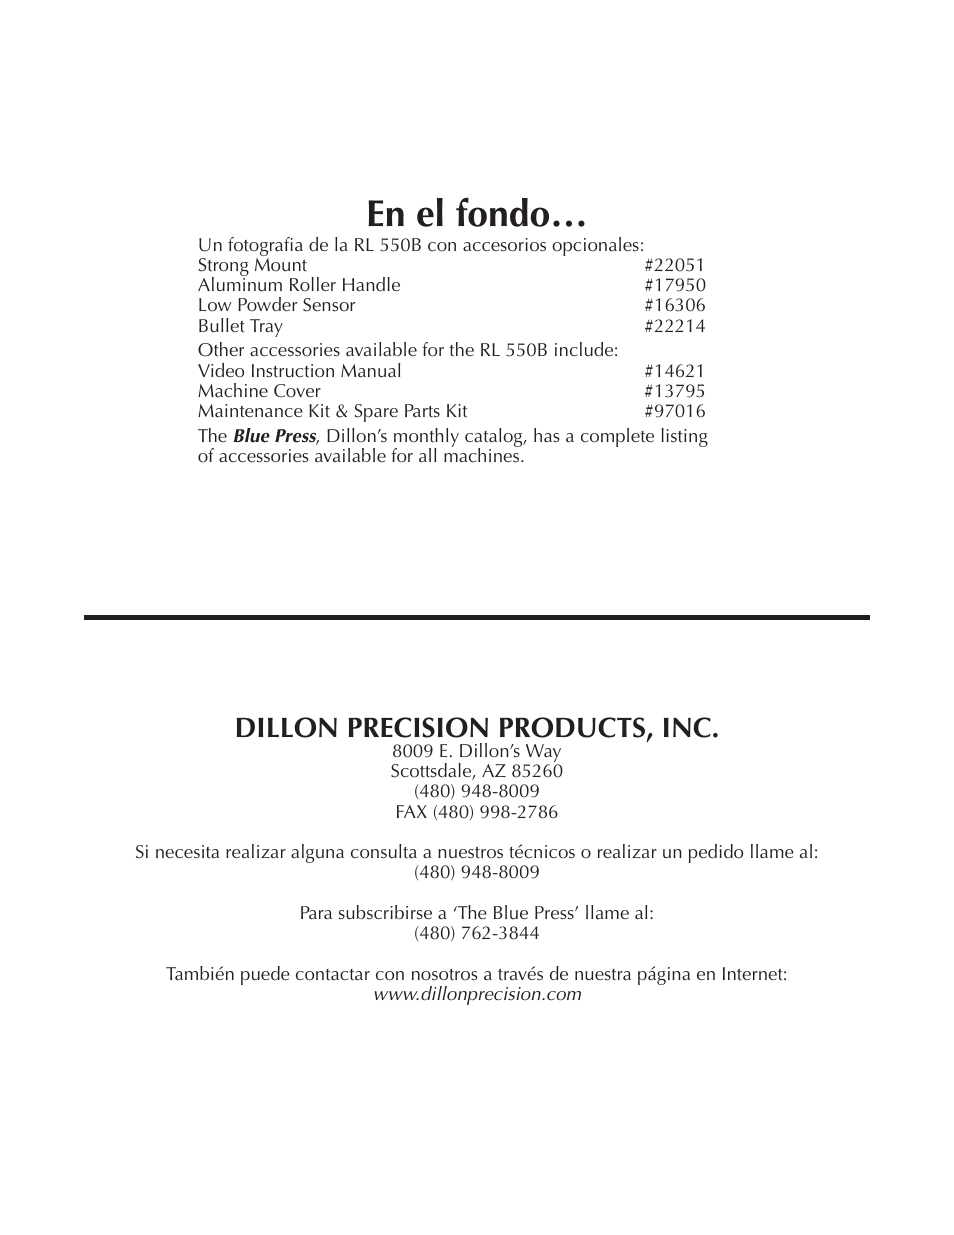 En el fondo, Dillon precision products, inc | Dillon